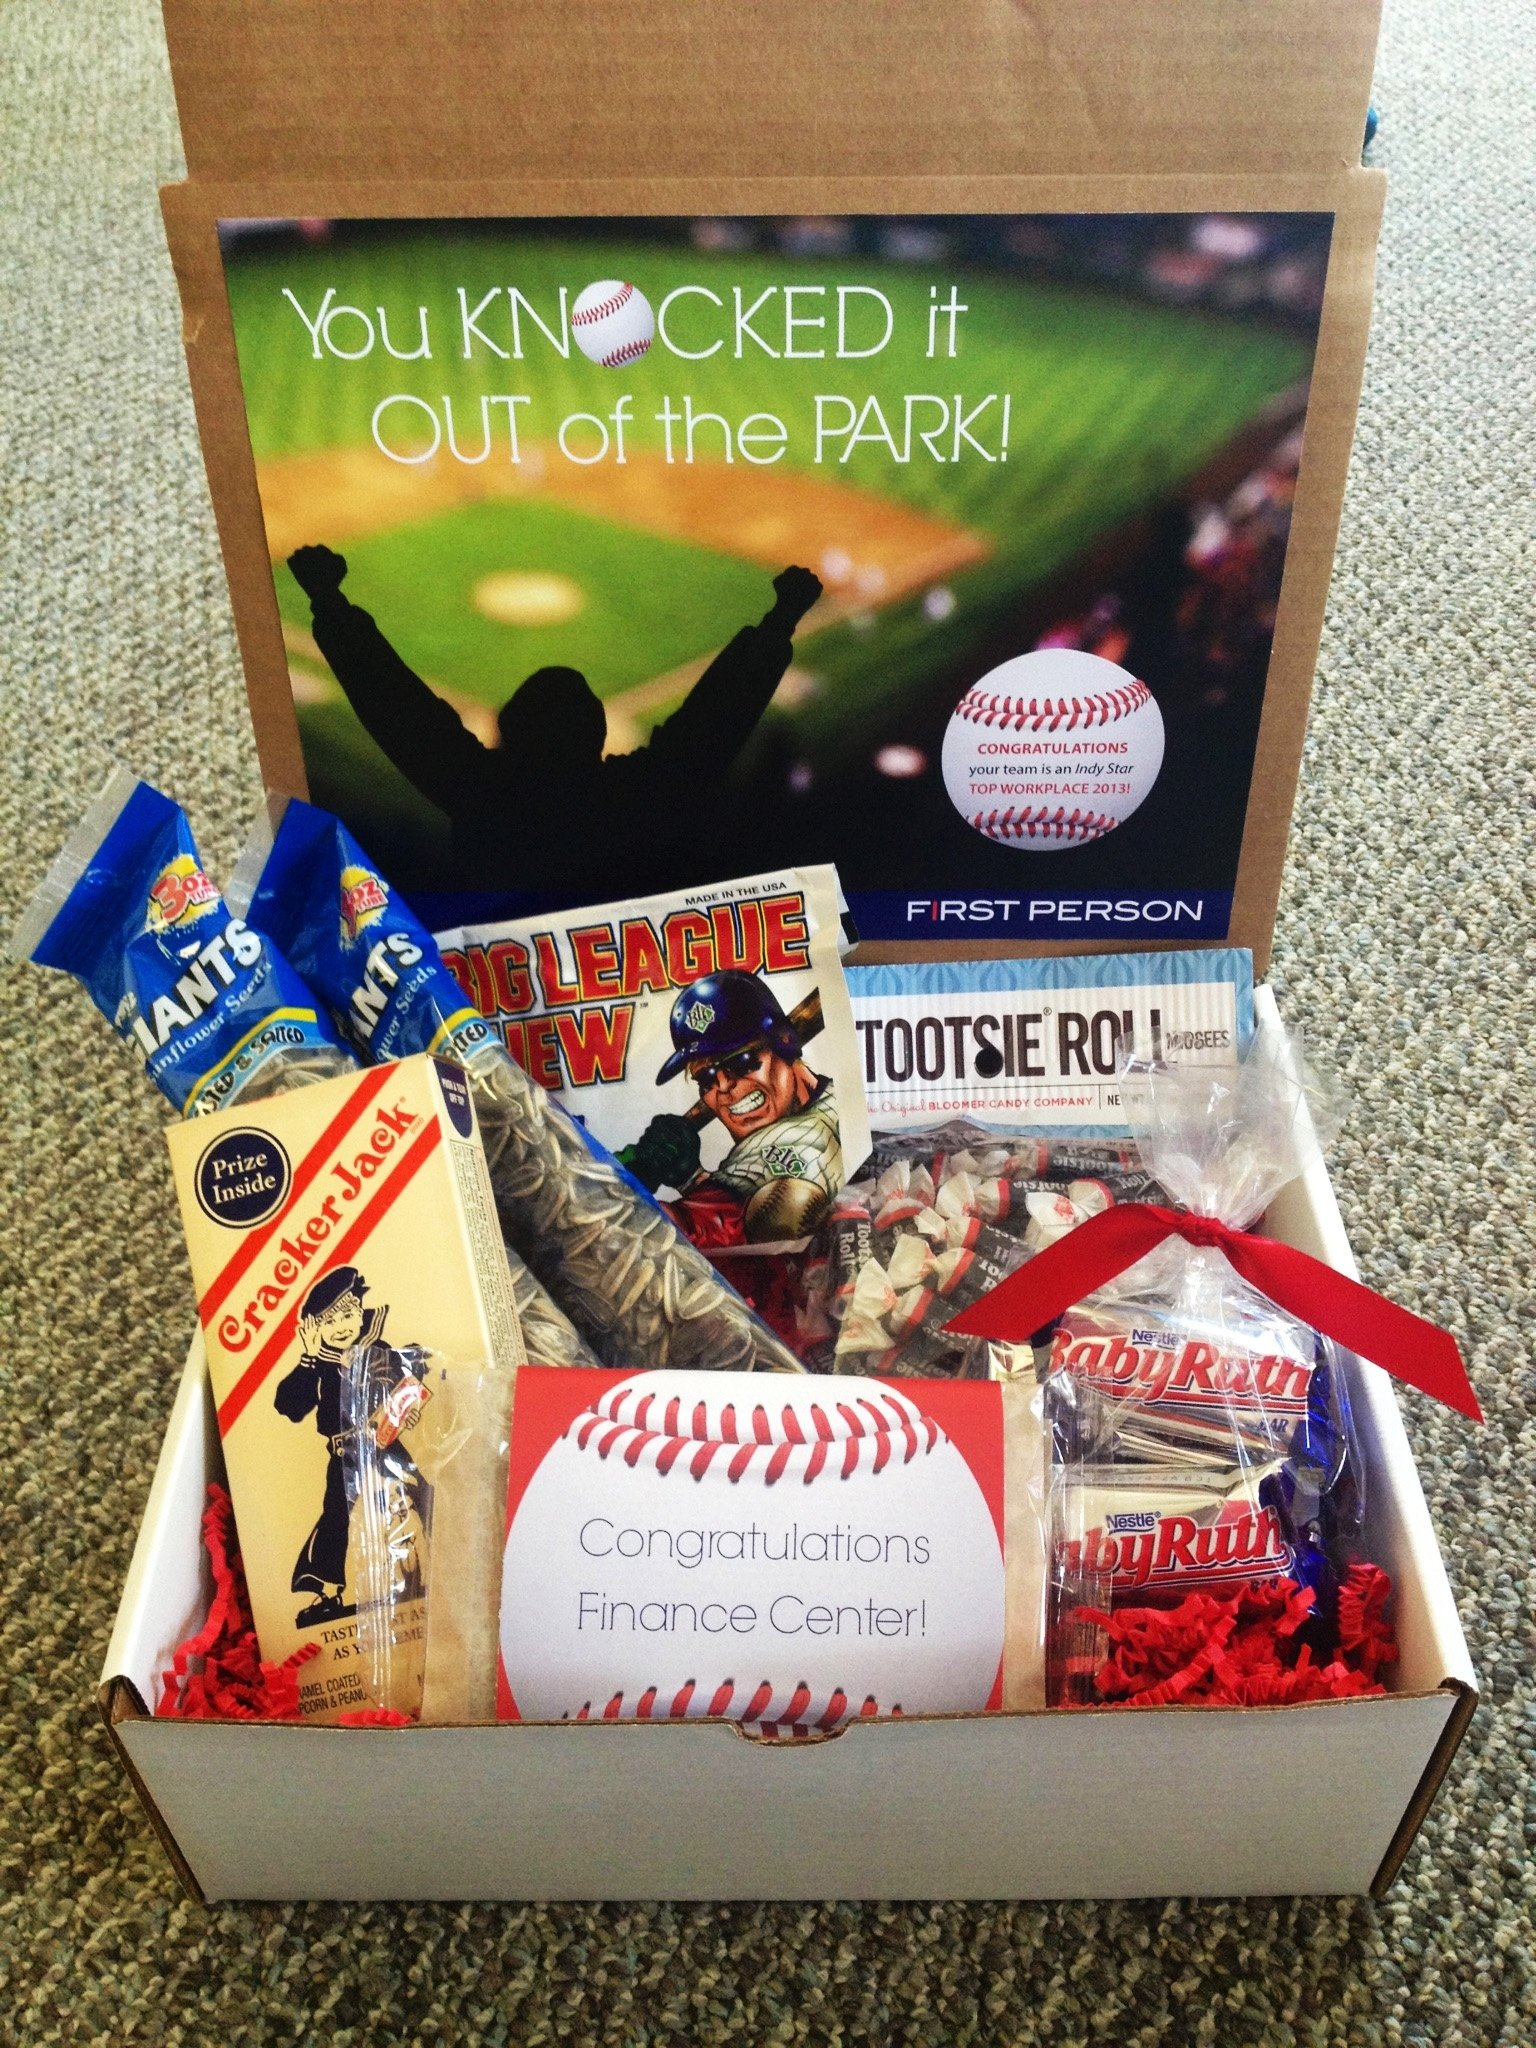 10 Best Christmas Gift Ideas For Clients you knocked it out of the park baseball themed gift box cracker 2021